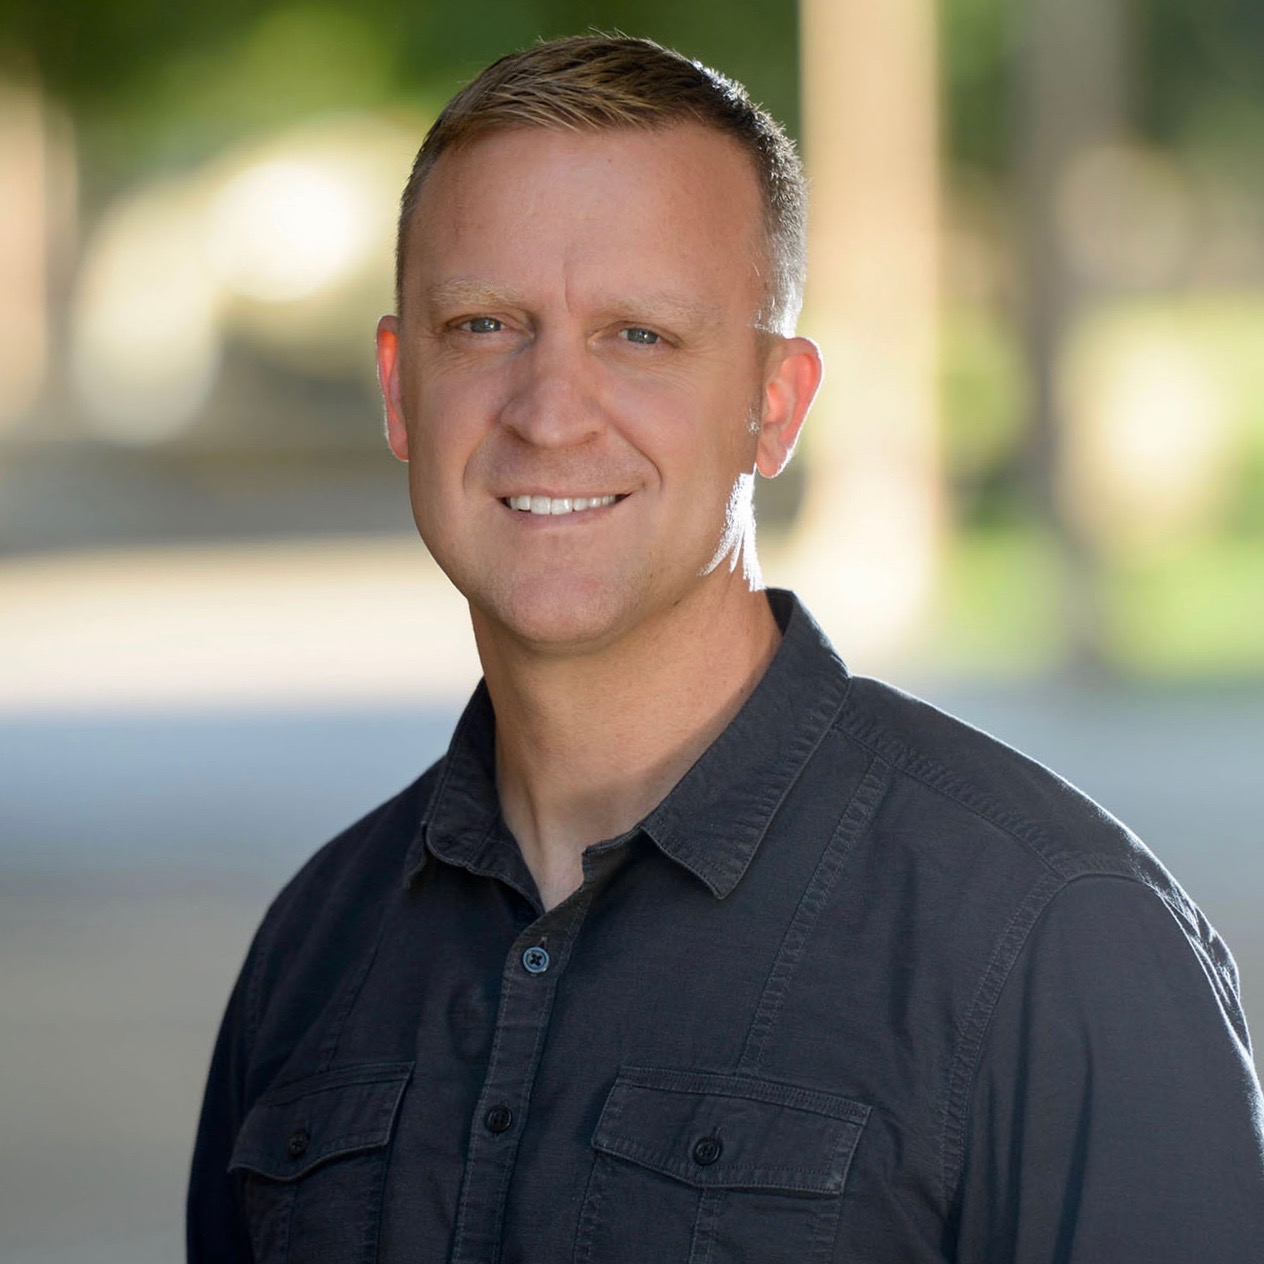 Eric E. Rasmussen, Ph.D.,  is an Associate Professor in the College of Media and Communication at Texas Tech University.